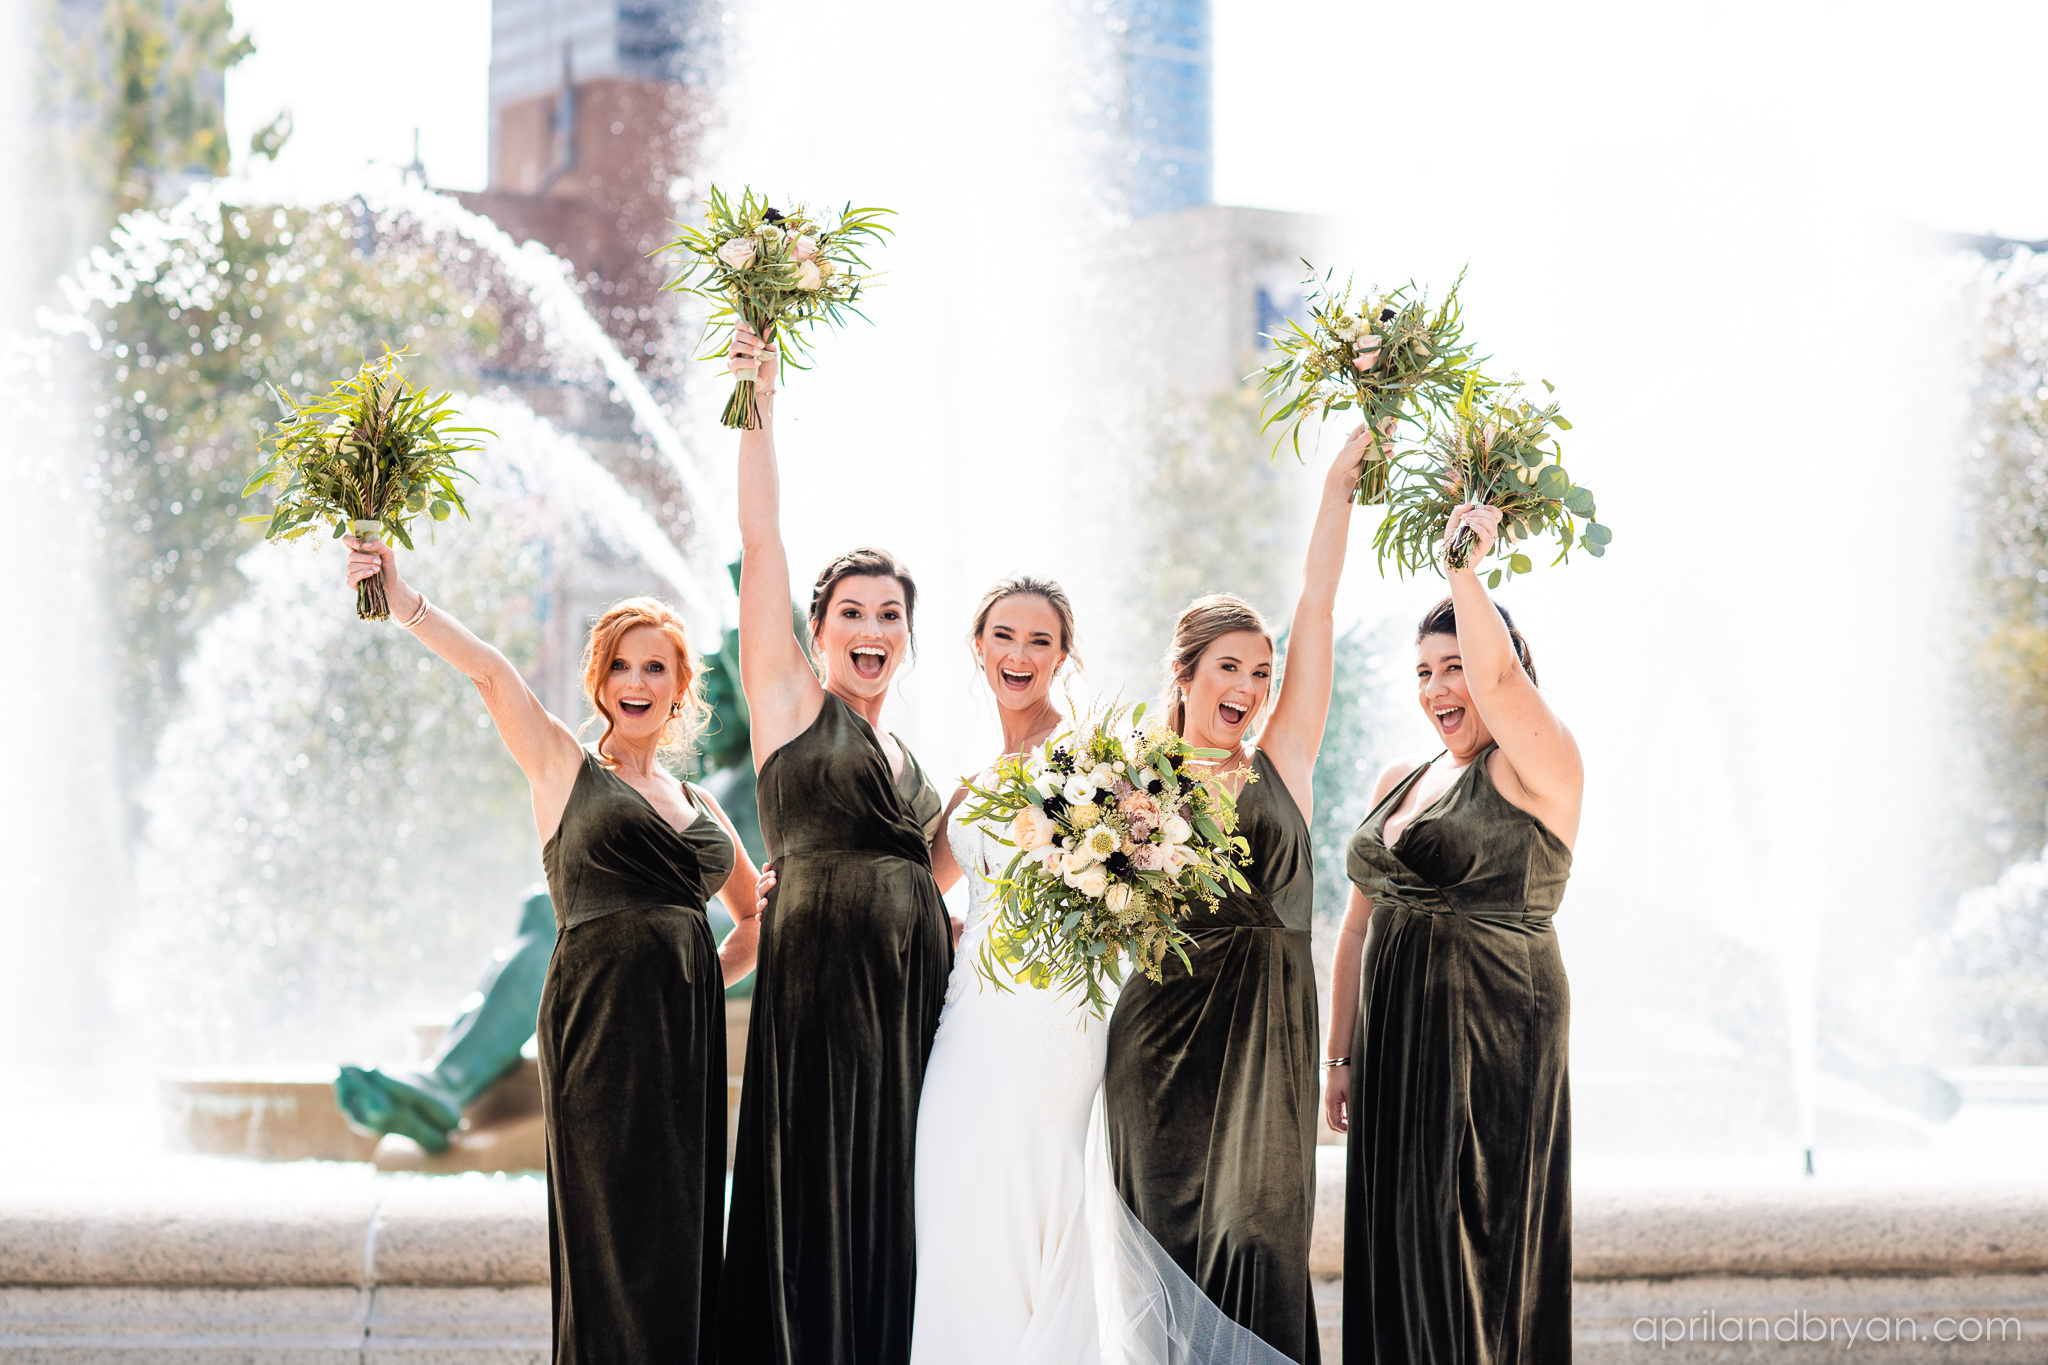 The bridal party gushes with joy in their ivy green, velvet bridesmaids dresses at the Logan Park Fountain in Philadelphia, PA. Shot by April & Bryan Photography. Featured on Dream Weddings.